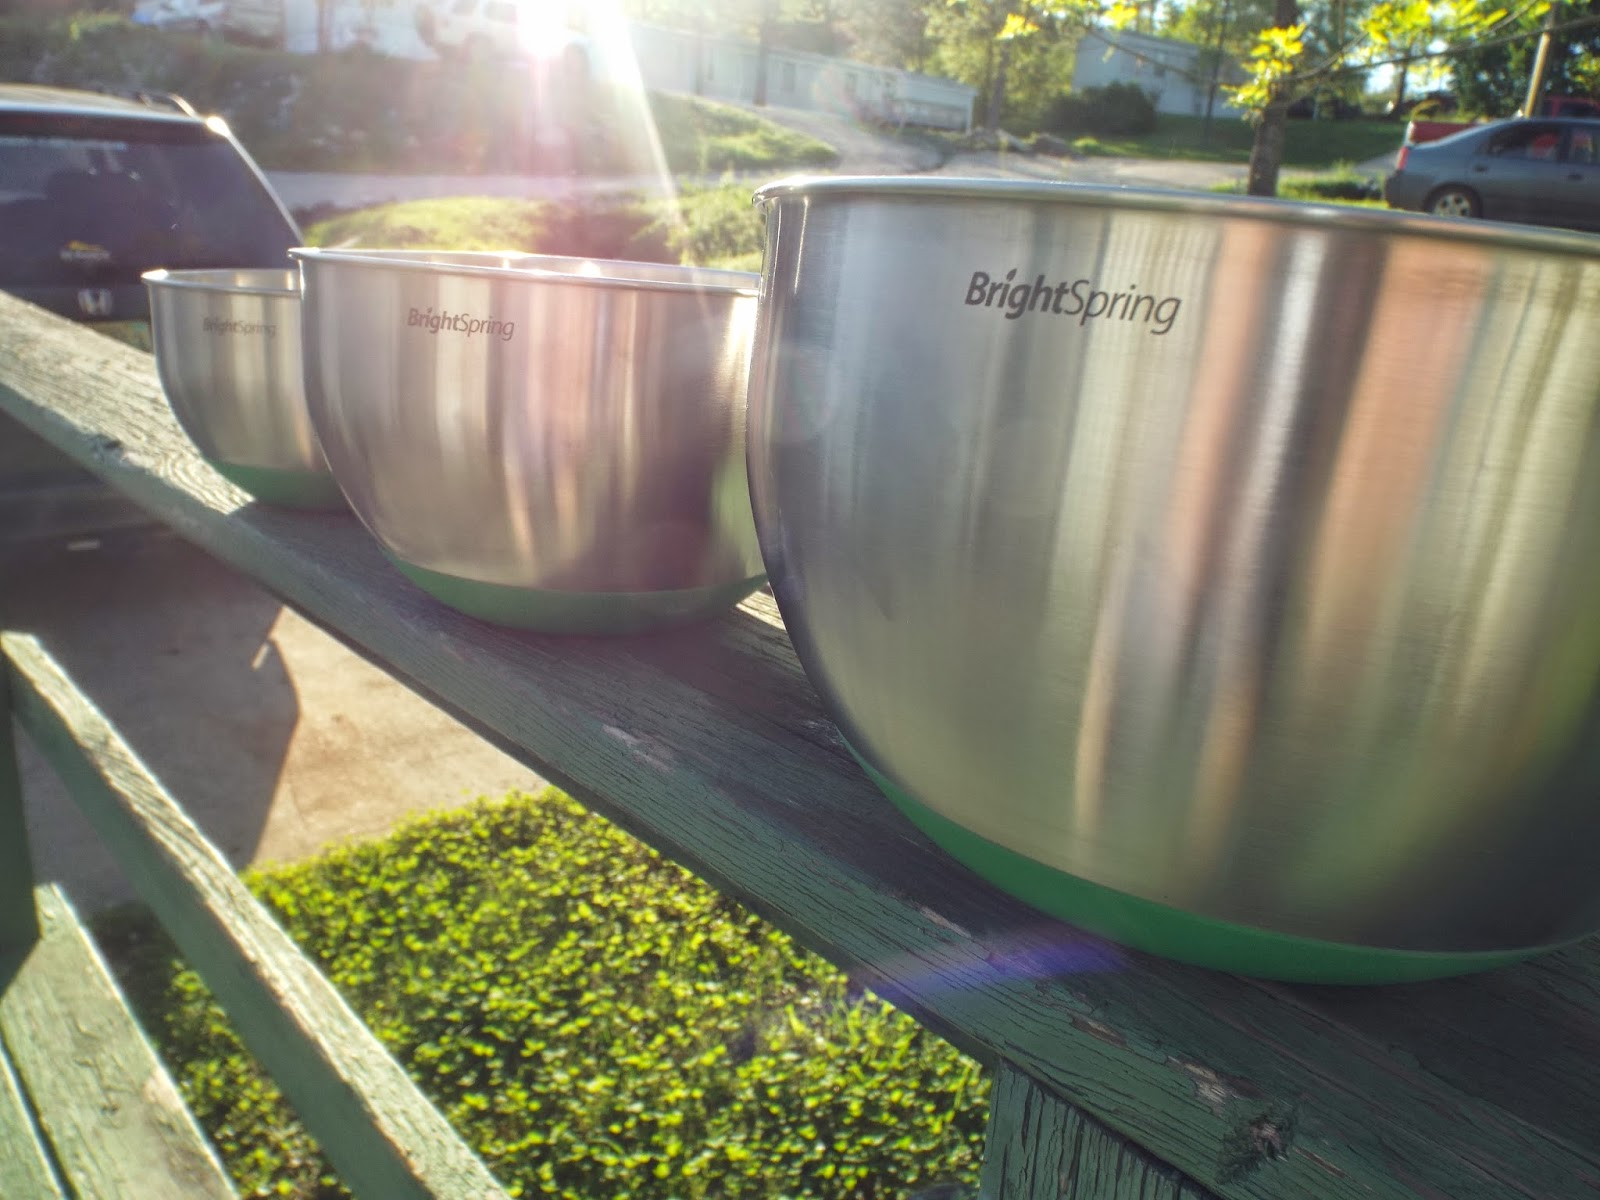 BrightSpring Mixing Bowls: A New Addition to the Kitchen